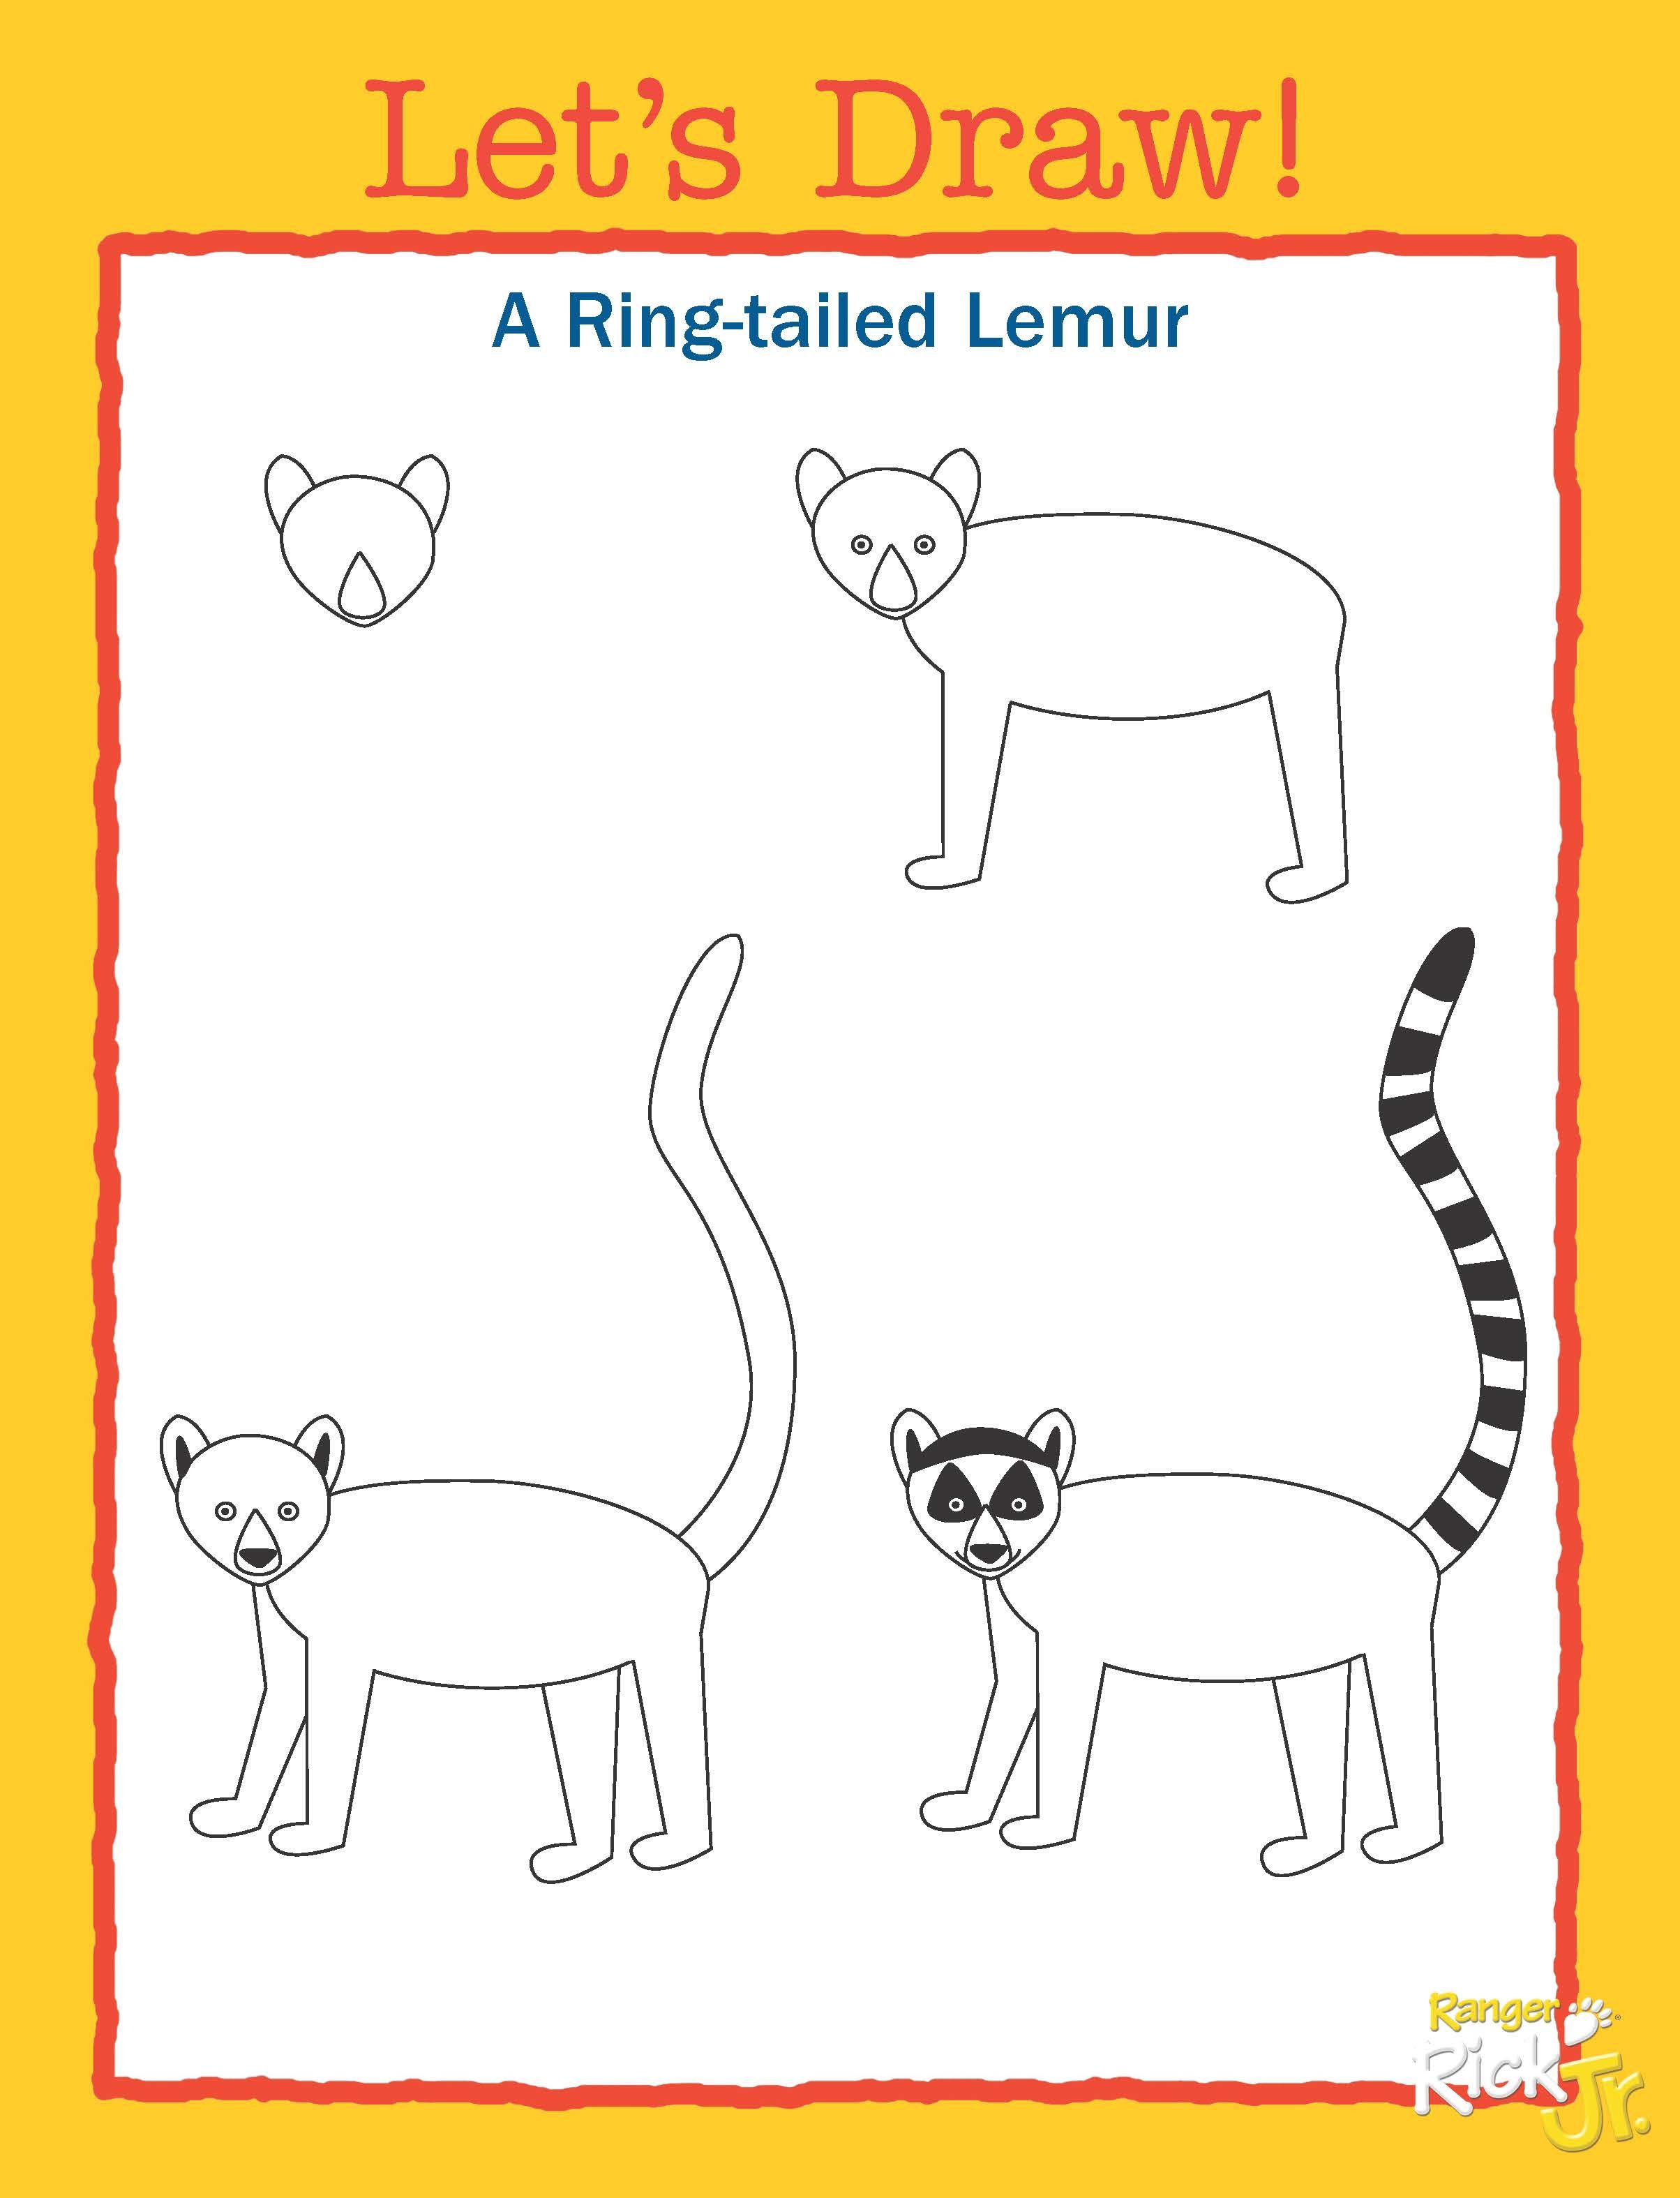 Teach Your Students How To Draw A Ring Tailed Lemur Using